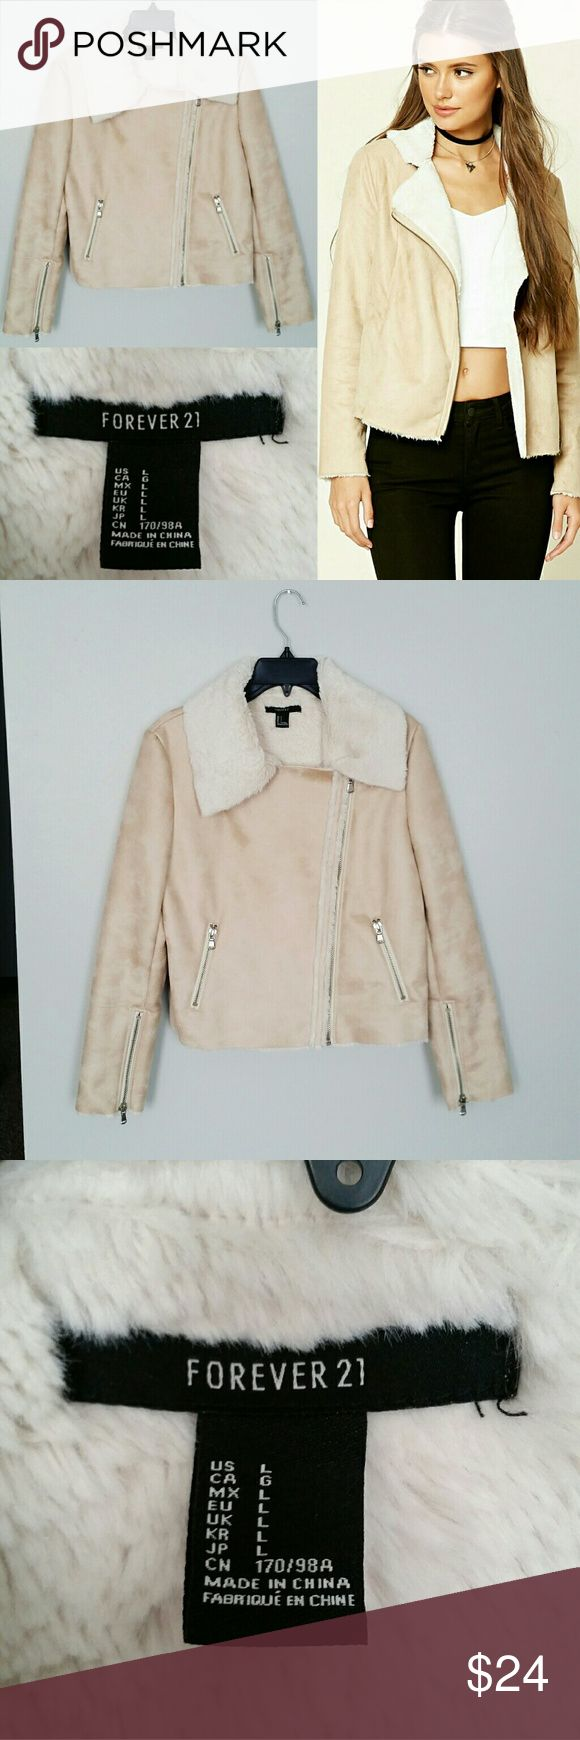 NWOT F21 Faux Fur Lined Faux Suede Moto Jacket NWOT no flaws. Material info on photos. Tag says large, fits more like a medium/small. All silver hardware. 2 zipper pockets, 2 zippers at sleeves, and zipper front closure. Very soft faux suede material, lining is extremely soft faux fur material. Armpit to armpit 19 inches, neck to hem 17 inches, sleeves 17 inches, width at hem 19 inches. Forever 21 Jackets & Coats Blazers